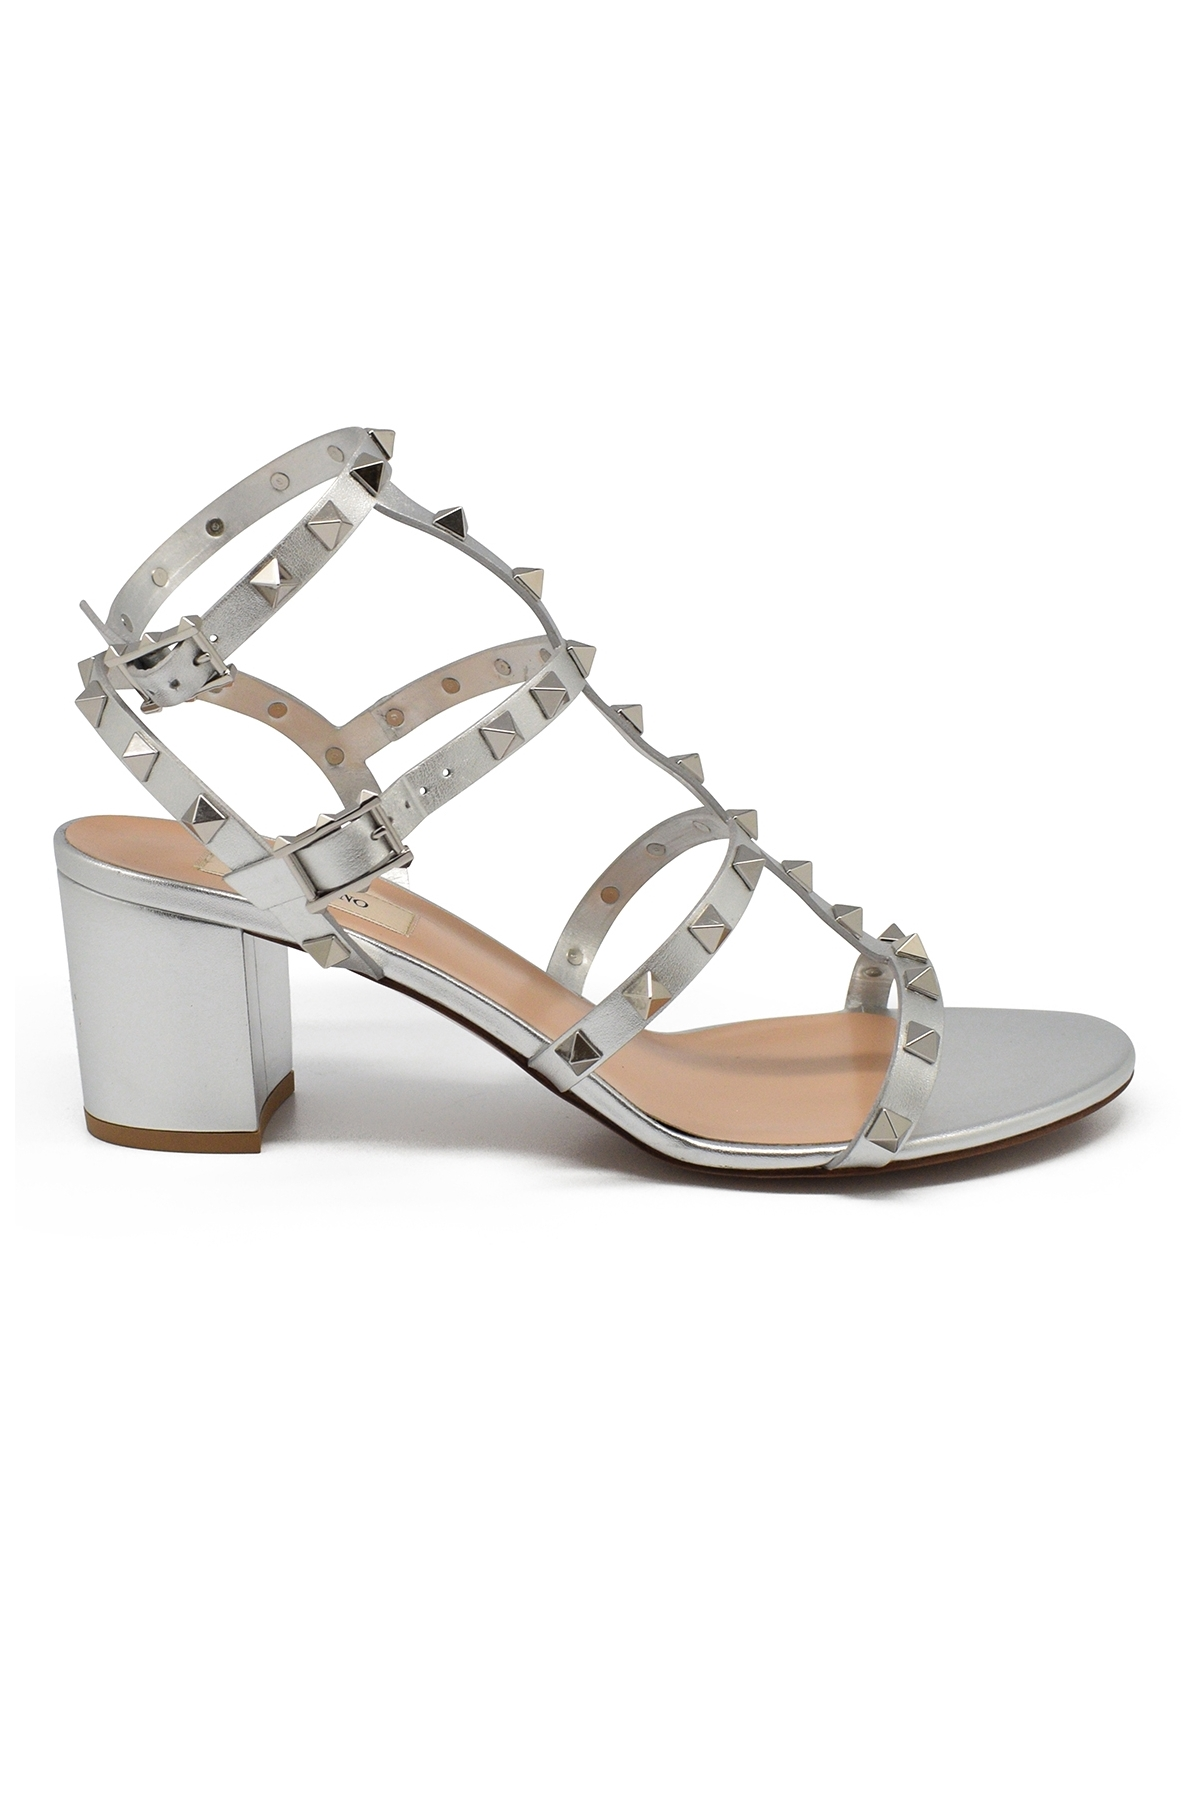 Valentino Rockstud sandals in silver leather with tone on tone platinium finish studs and low heel